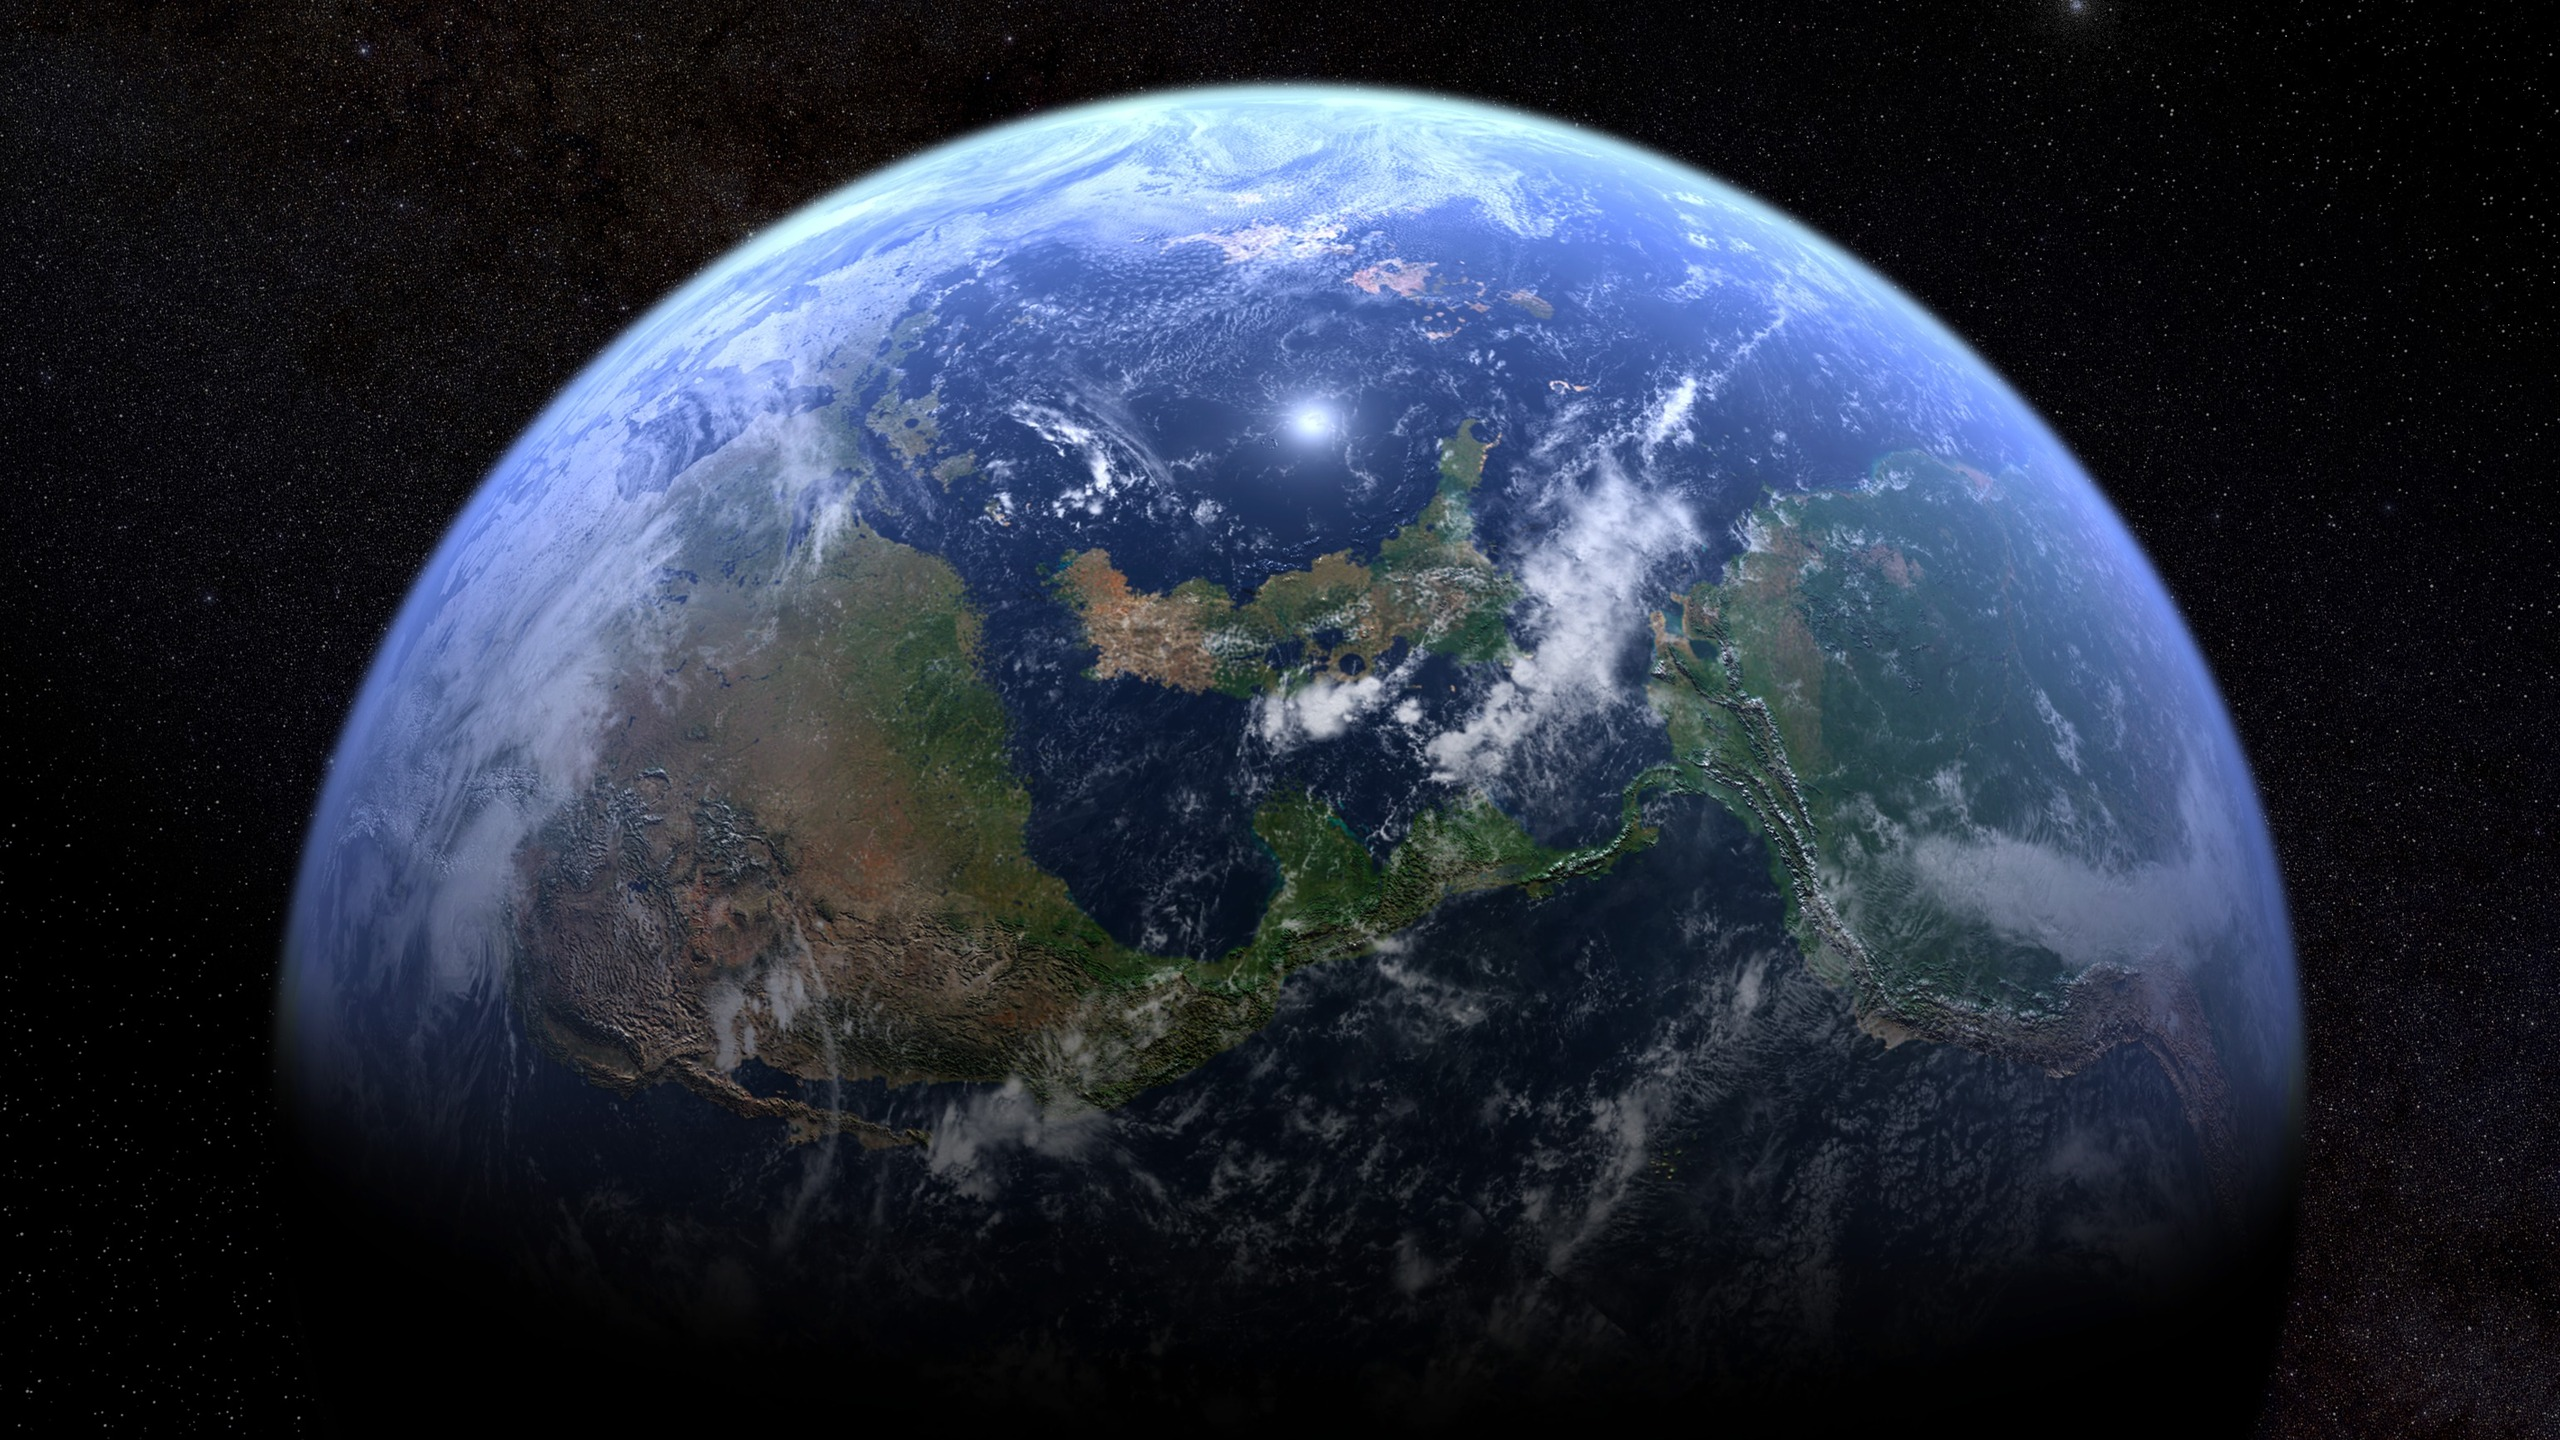 2560x1440 Earth Space 1440p Resolution Hd 4k Wallpapers Images